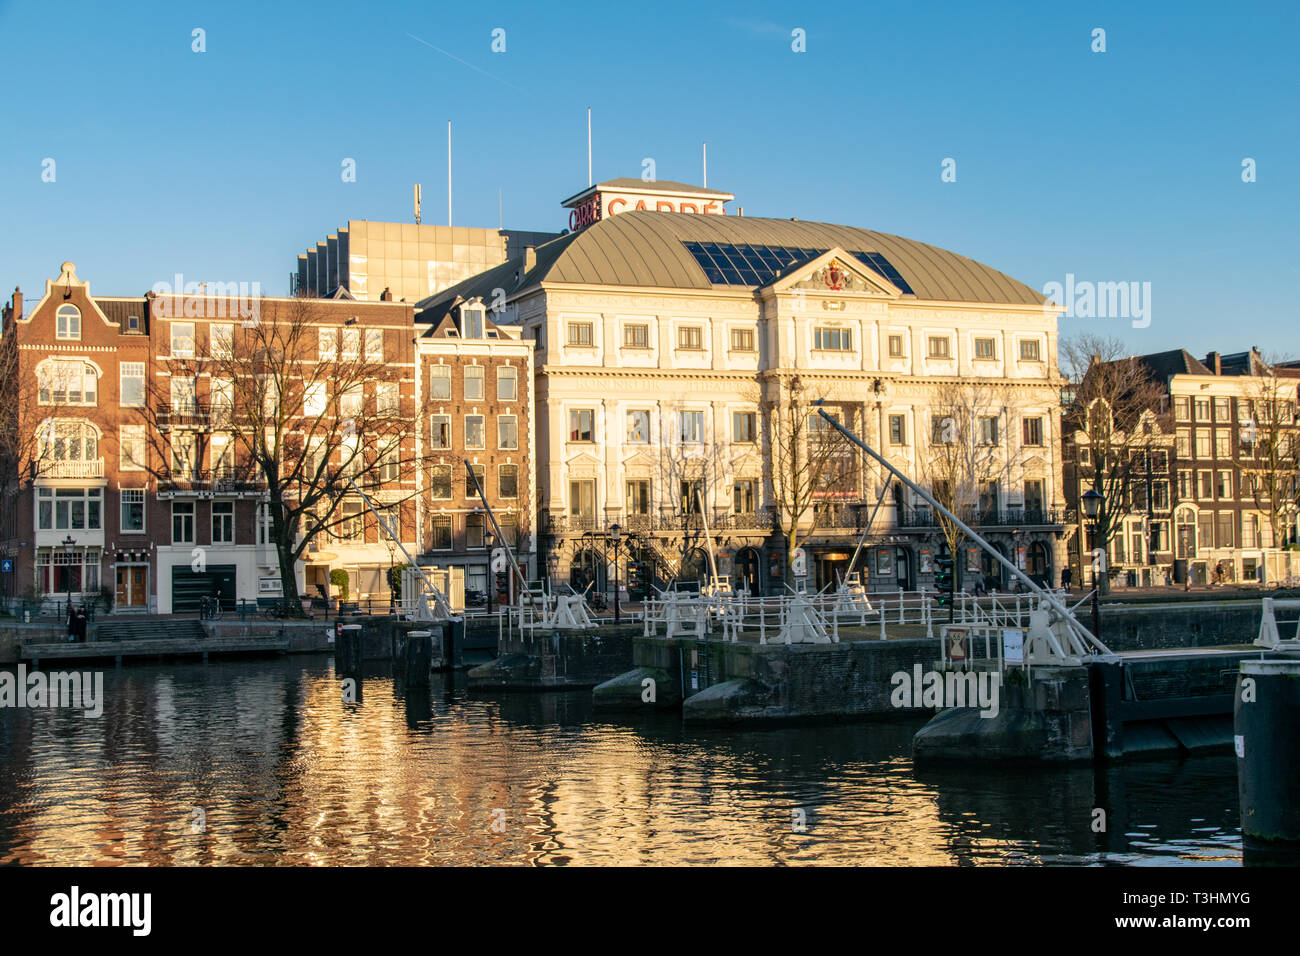 Canals of Amsterdam Stock Photo